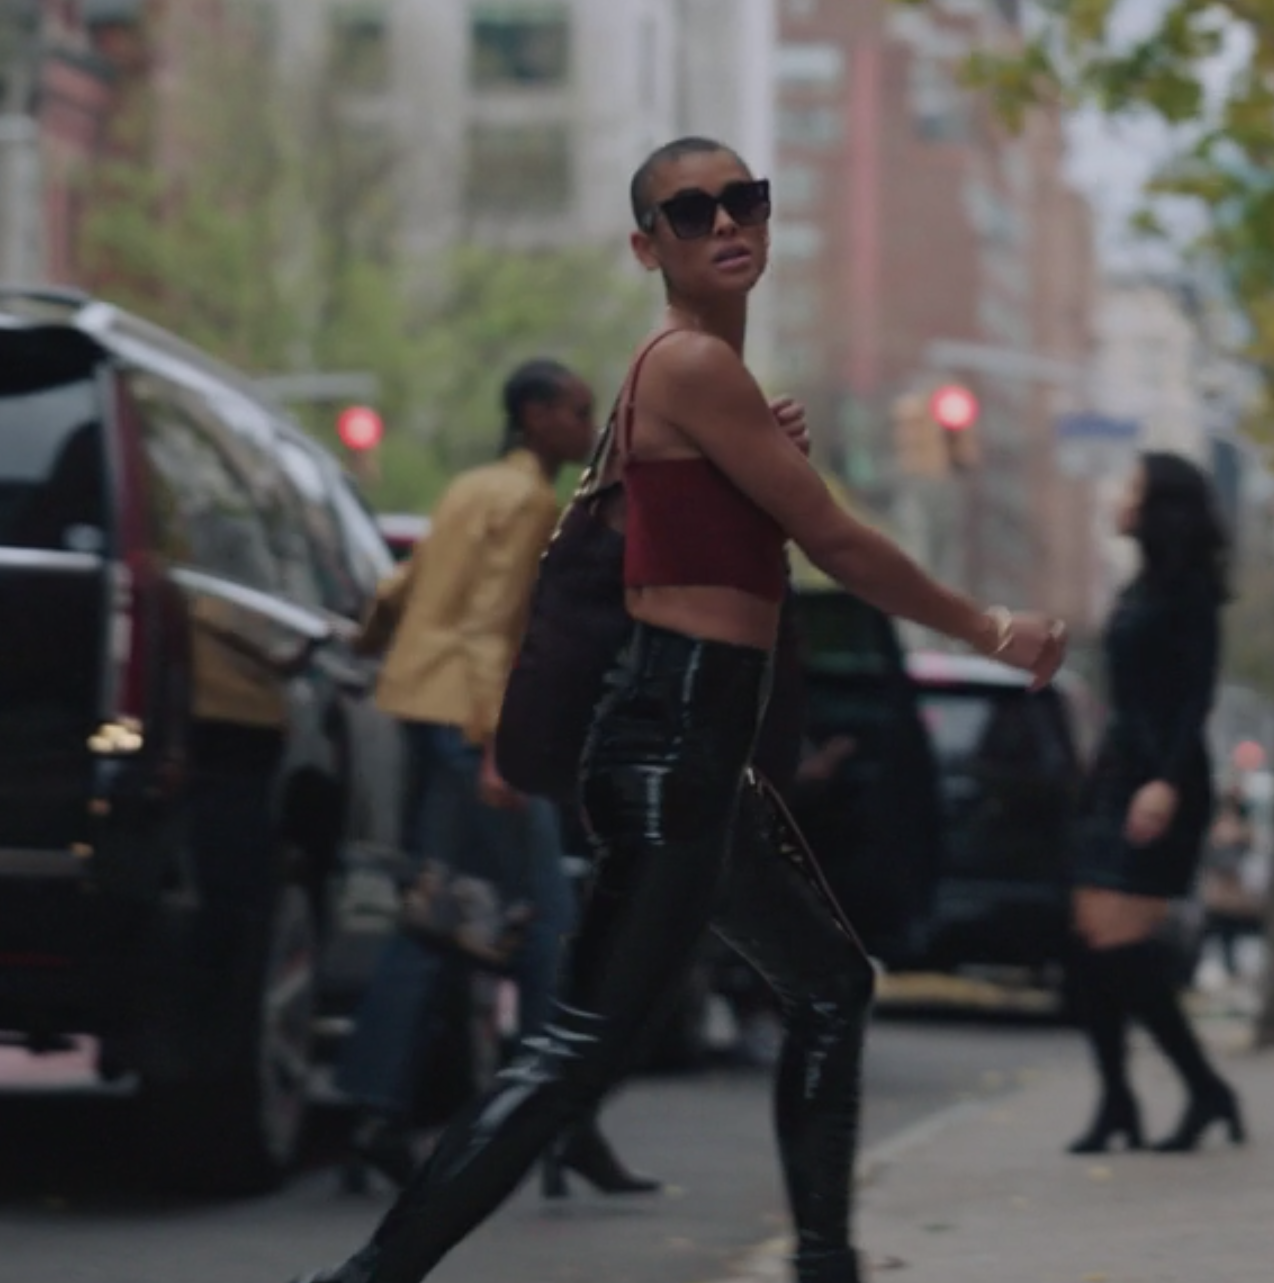 Julien wears high waisted leather pants and a cropped tank top